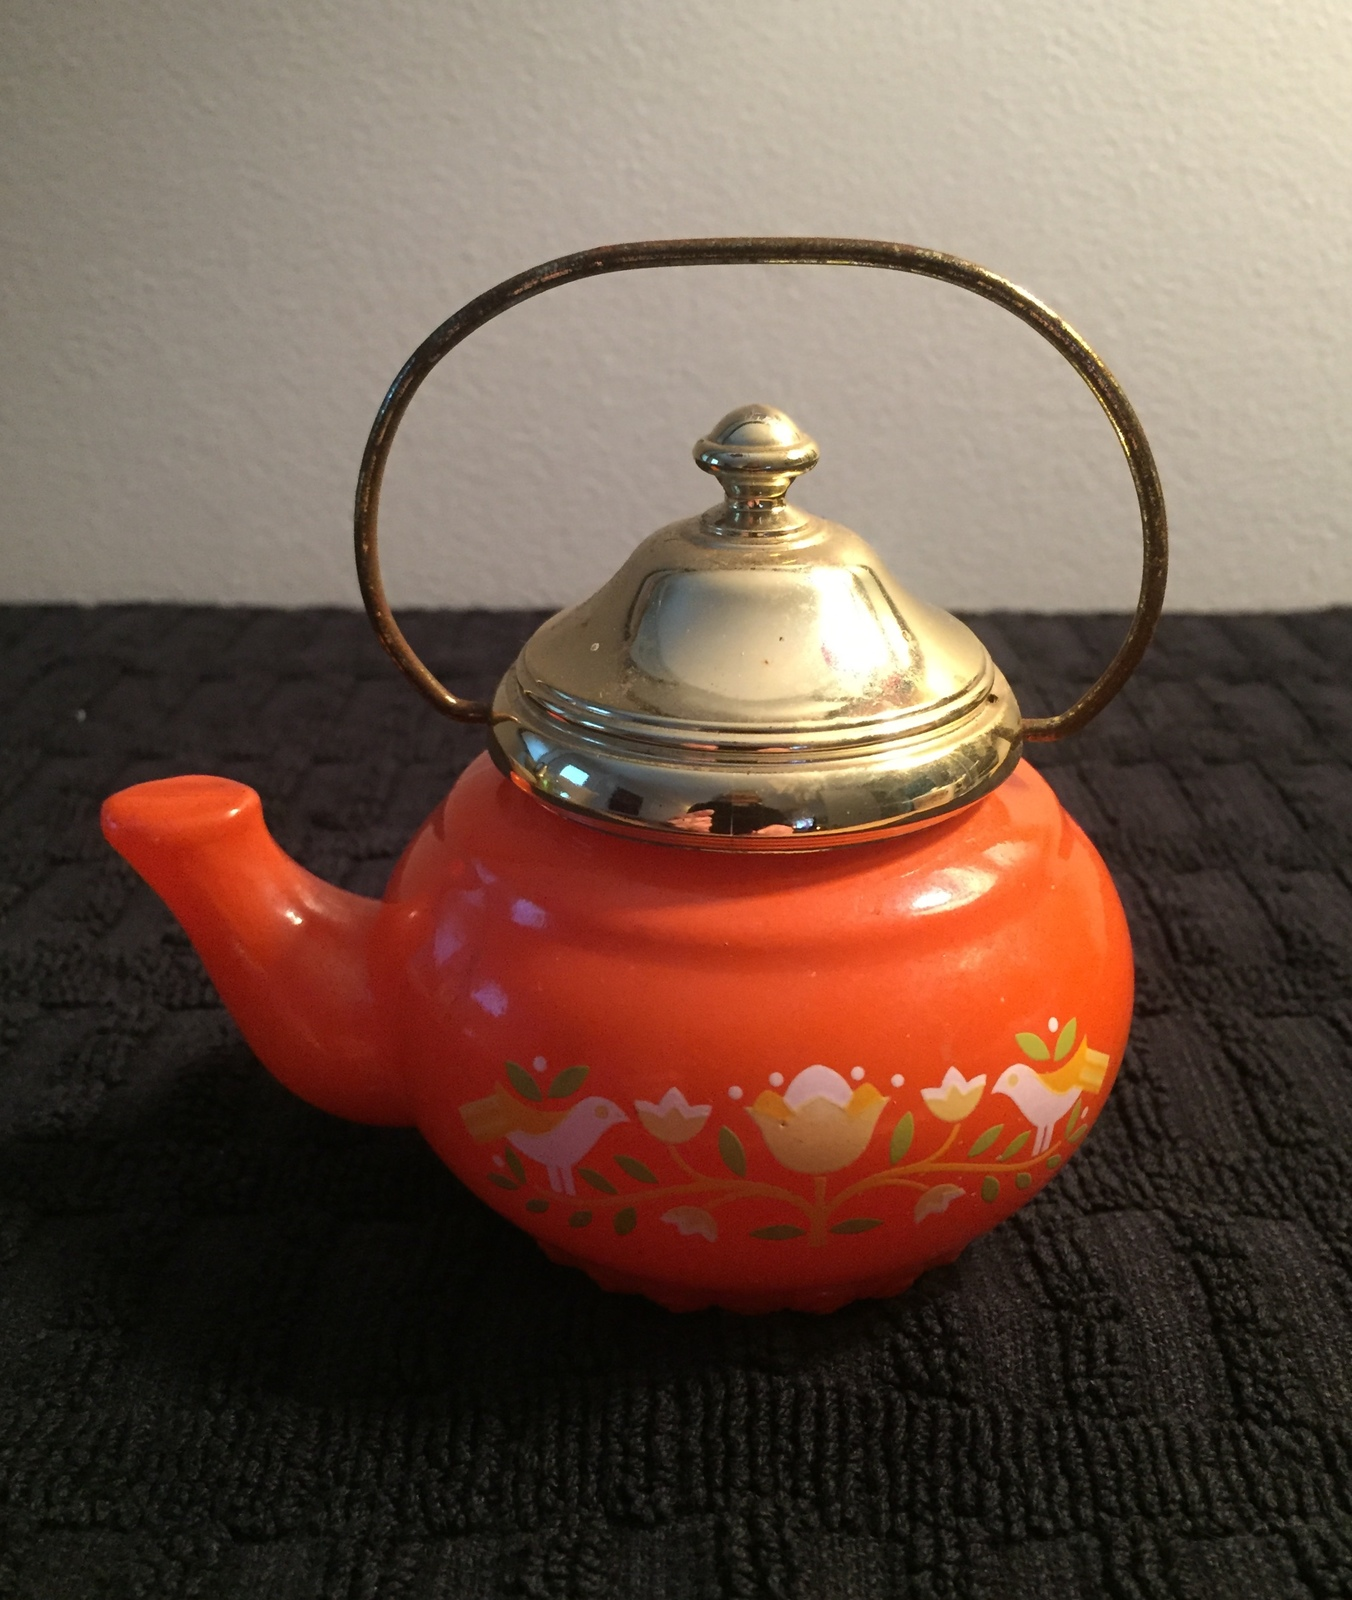 70s Avon Little Teapot with gold top and handle bath foam bottle (Lemon Velvet)